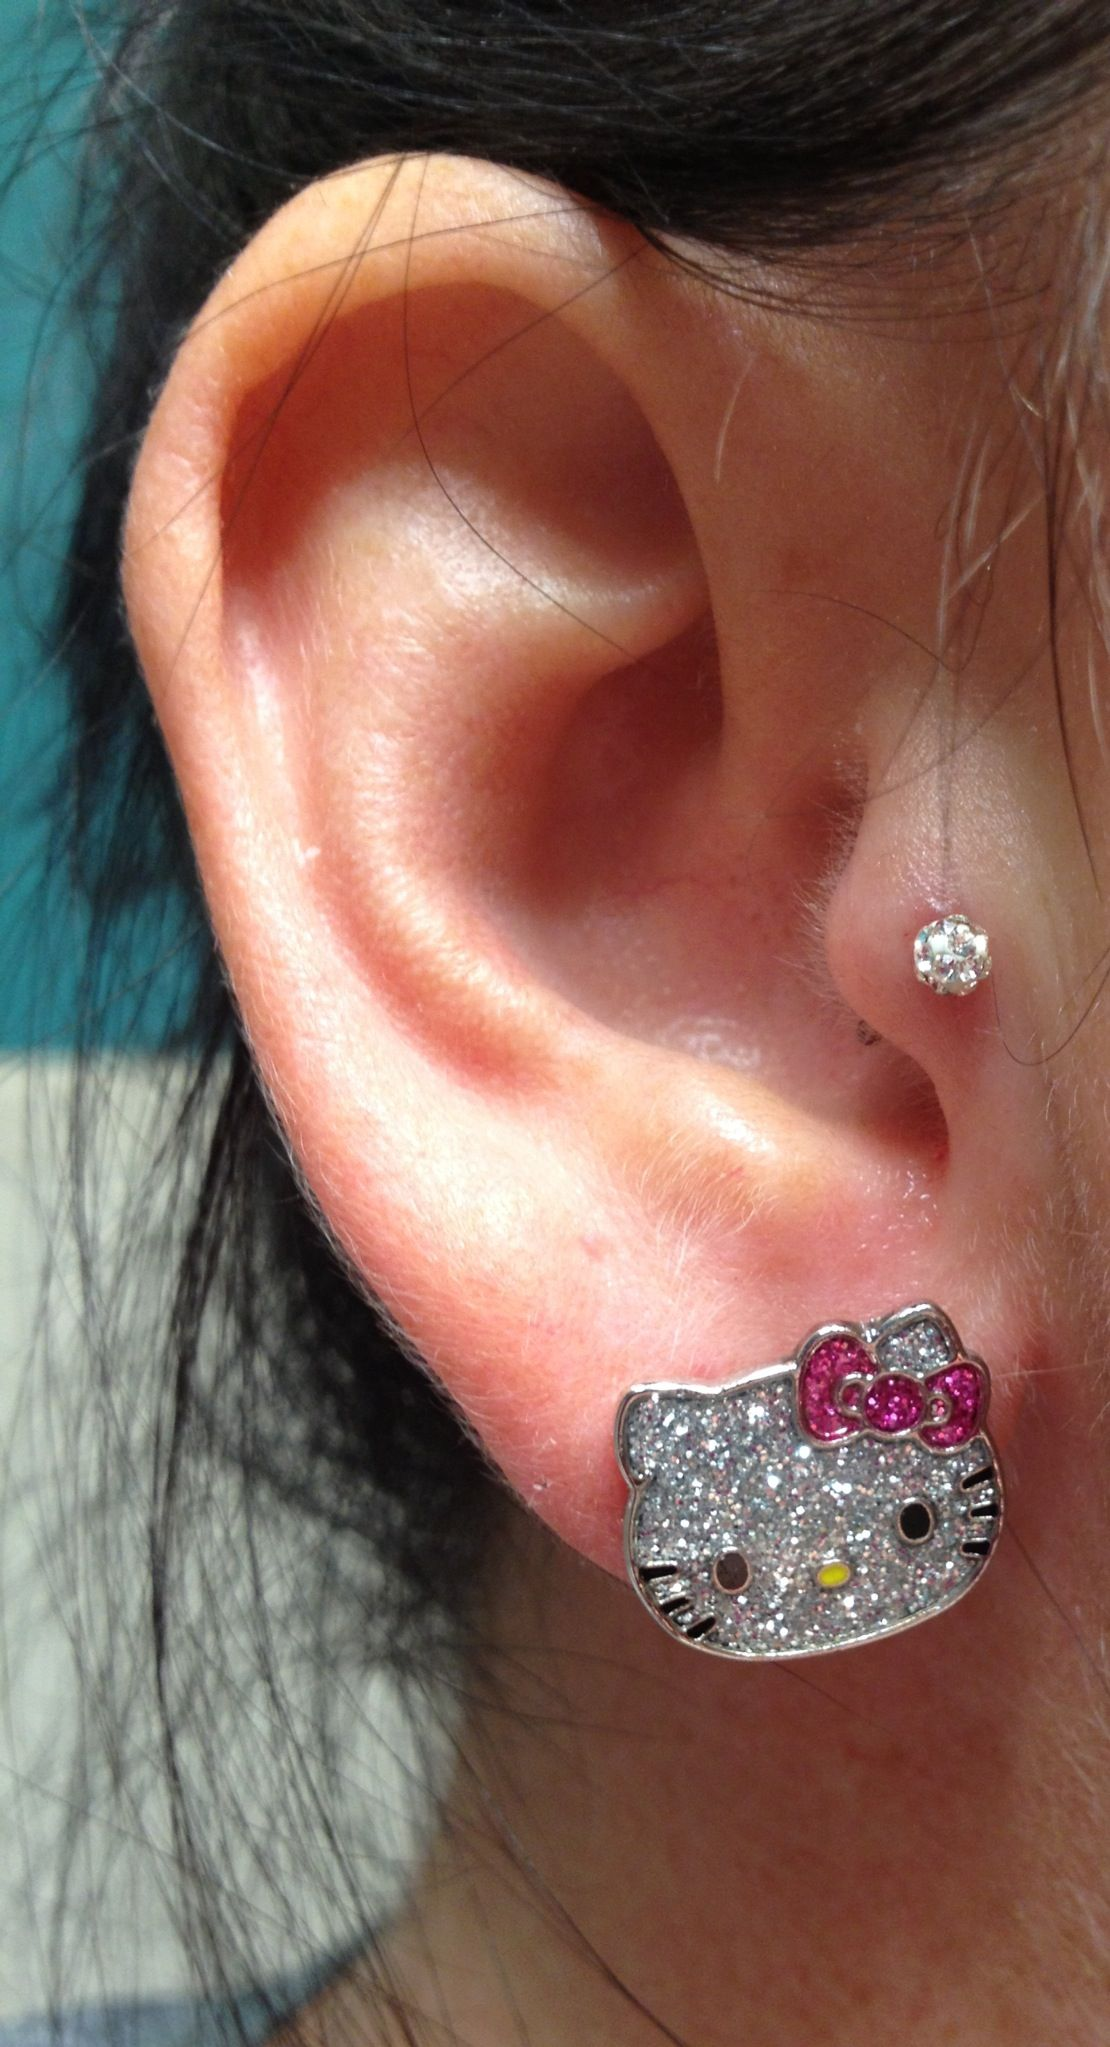 New Tragus Piercing Didn T Hurt Like I Thought Just Felt A Lot Of Pressure Really No Pain At All